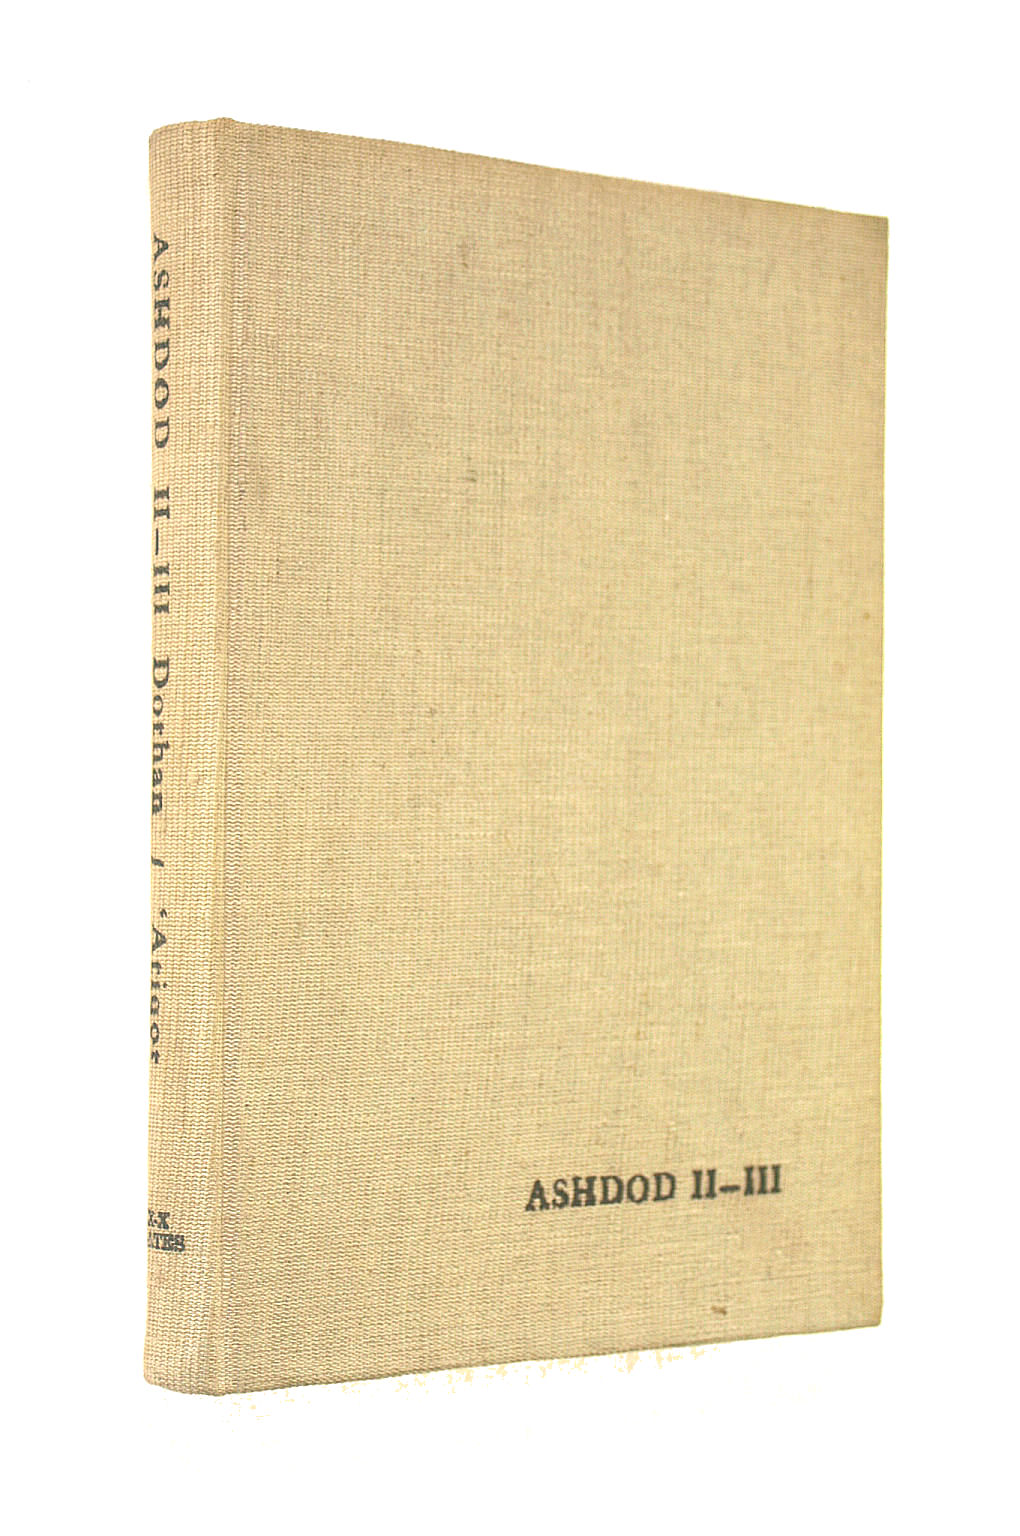 Image for Ashdod II-III: The Second And Third Seasons Of Excavations 1963, 1965; Soundings In 1967. Figures and Plates